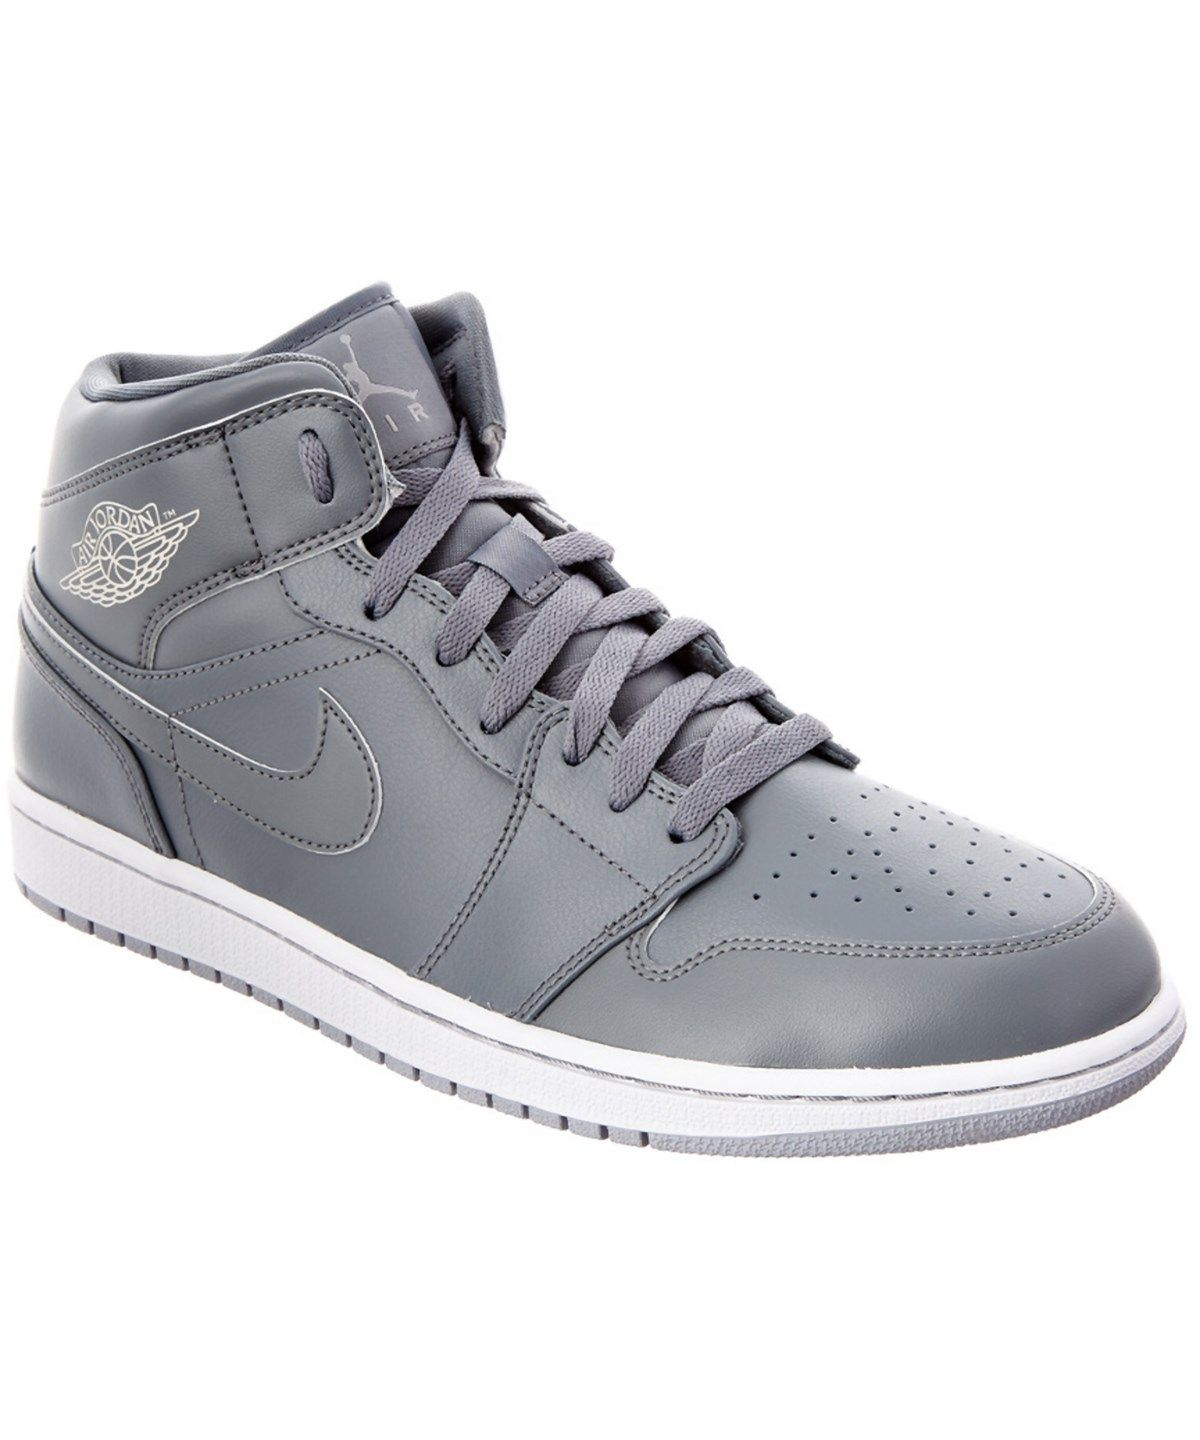 52d693165fe505 NIKE Nike Men S Air Jordan 1 Mid Leather Sneaker .  nike  shoes  sneakers